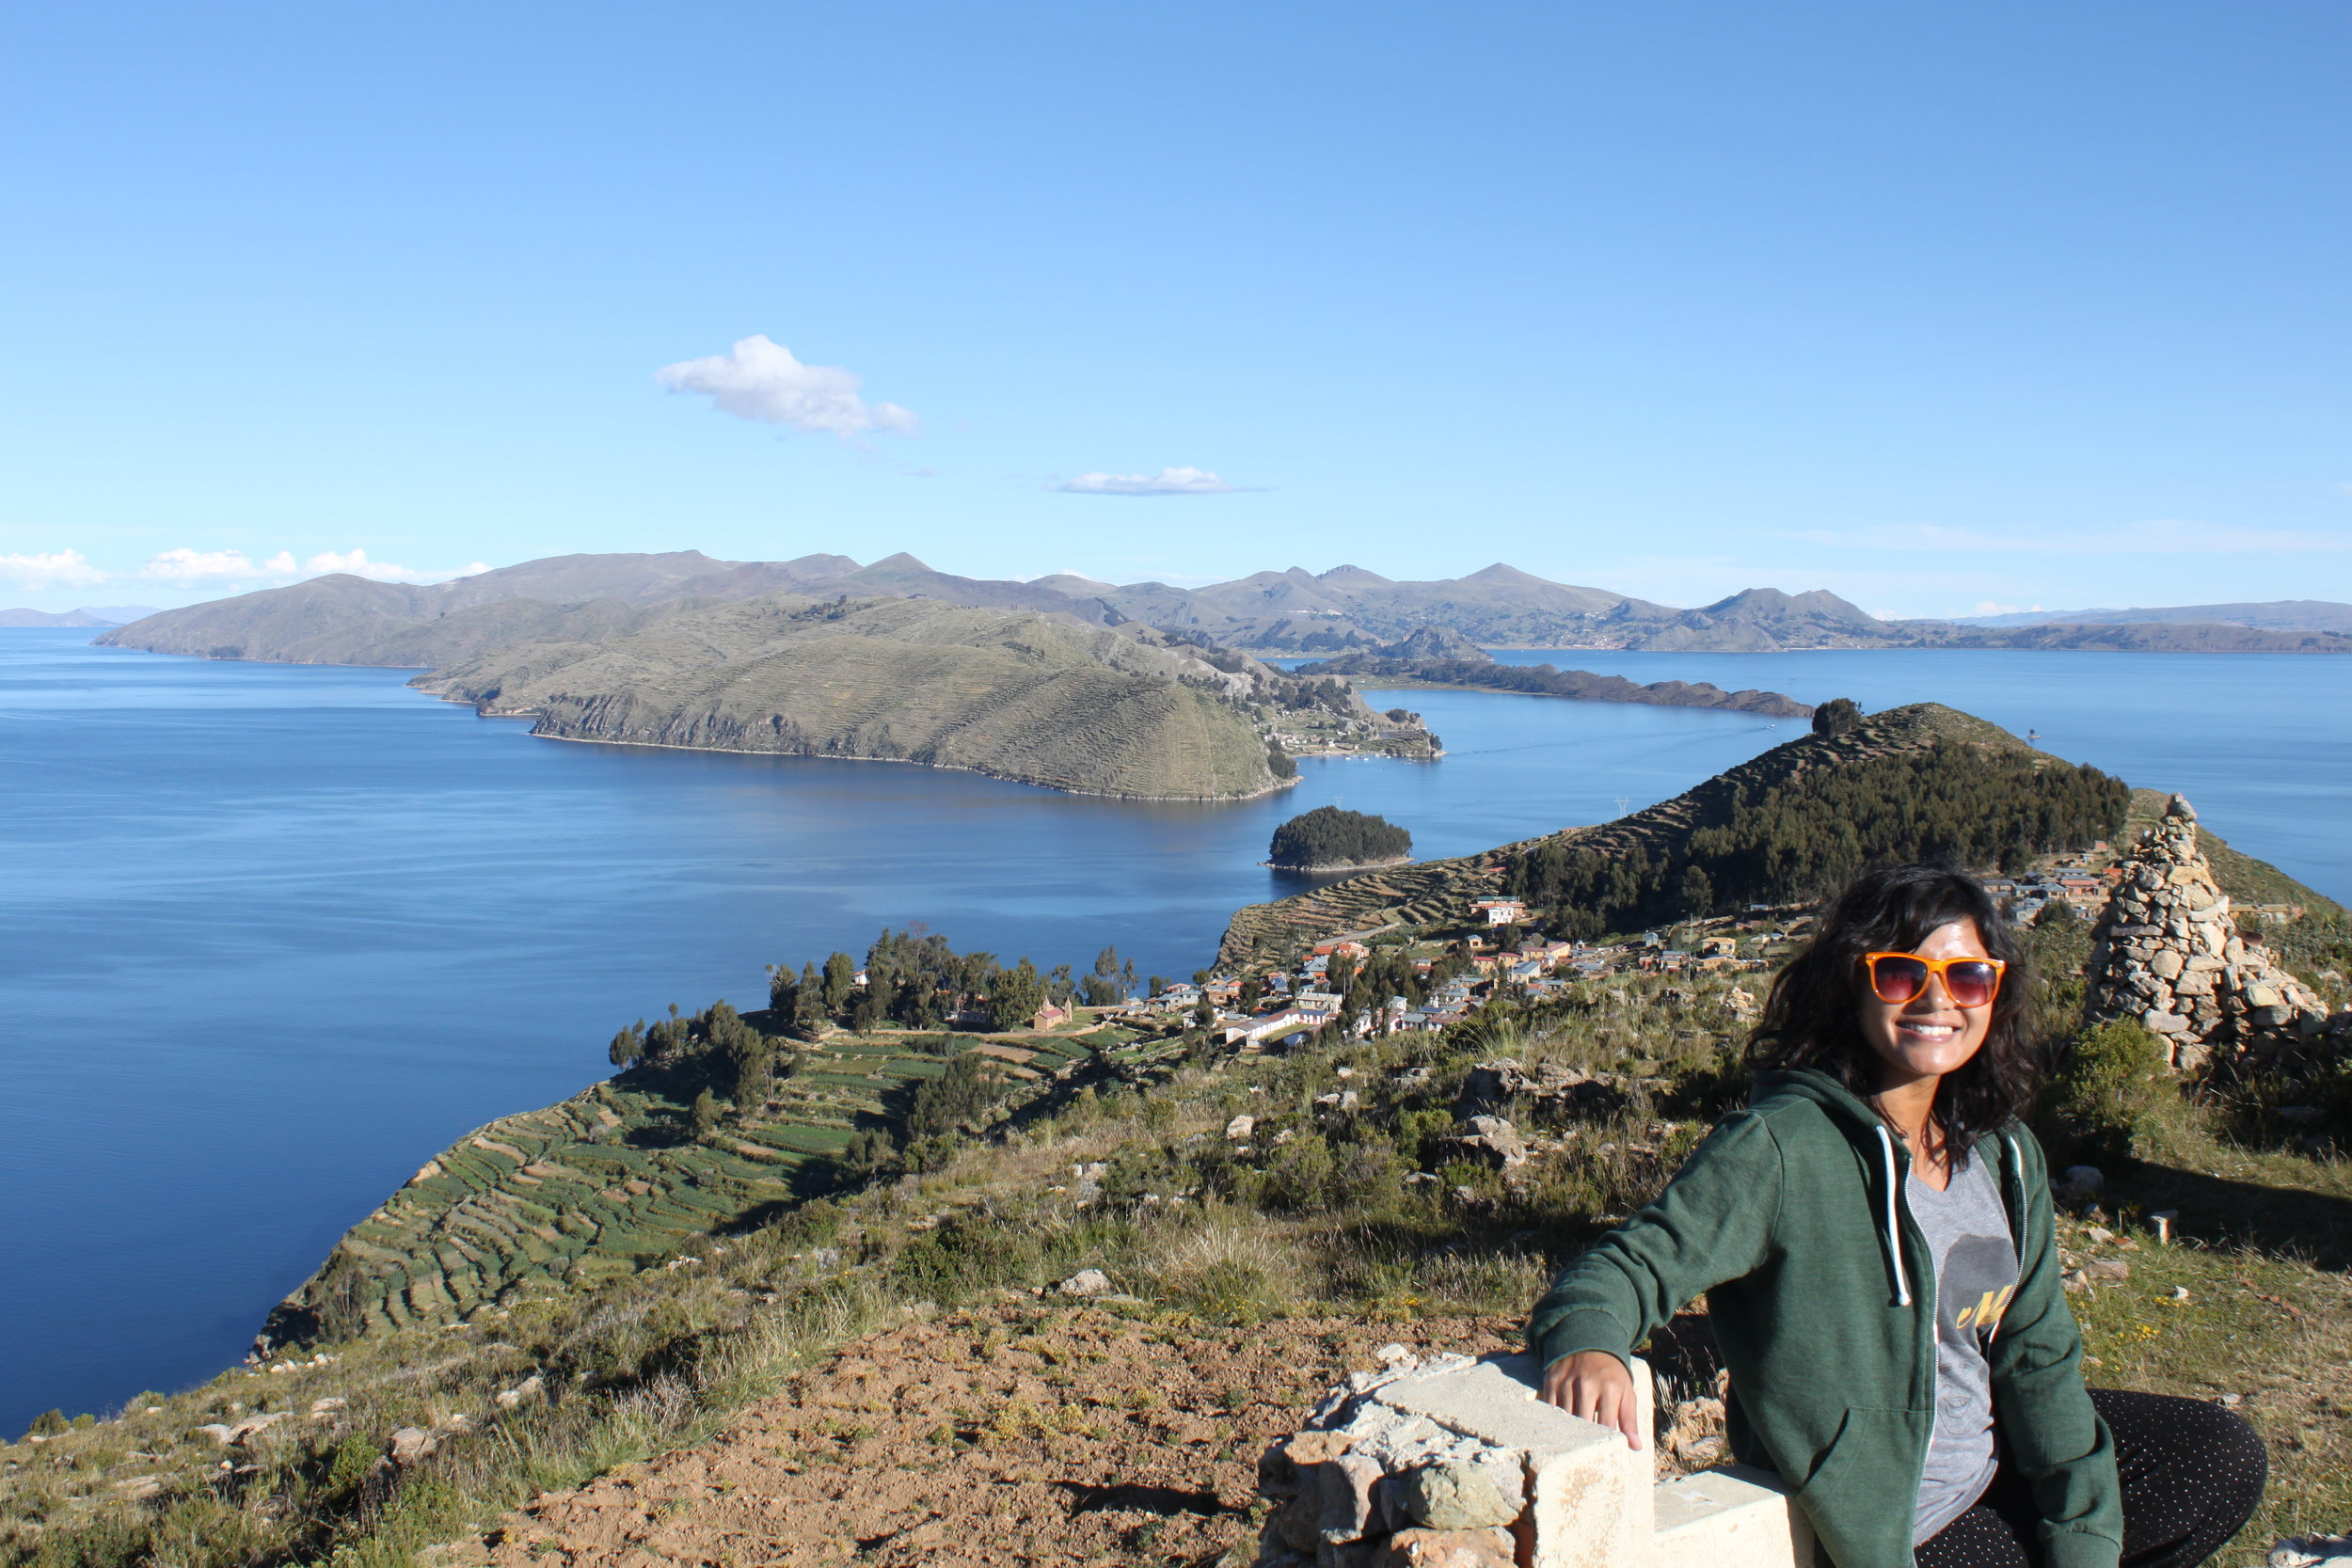 A stunning island in the middle of Lake Titicaca